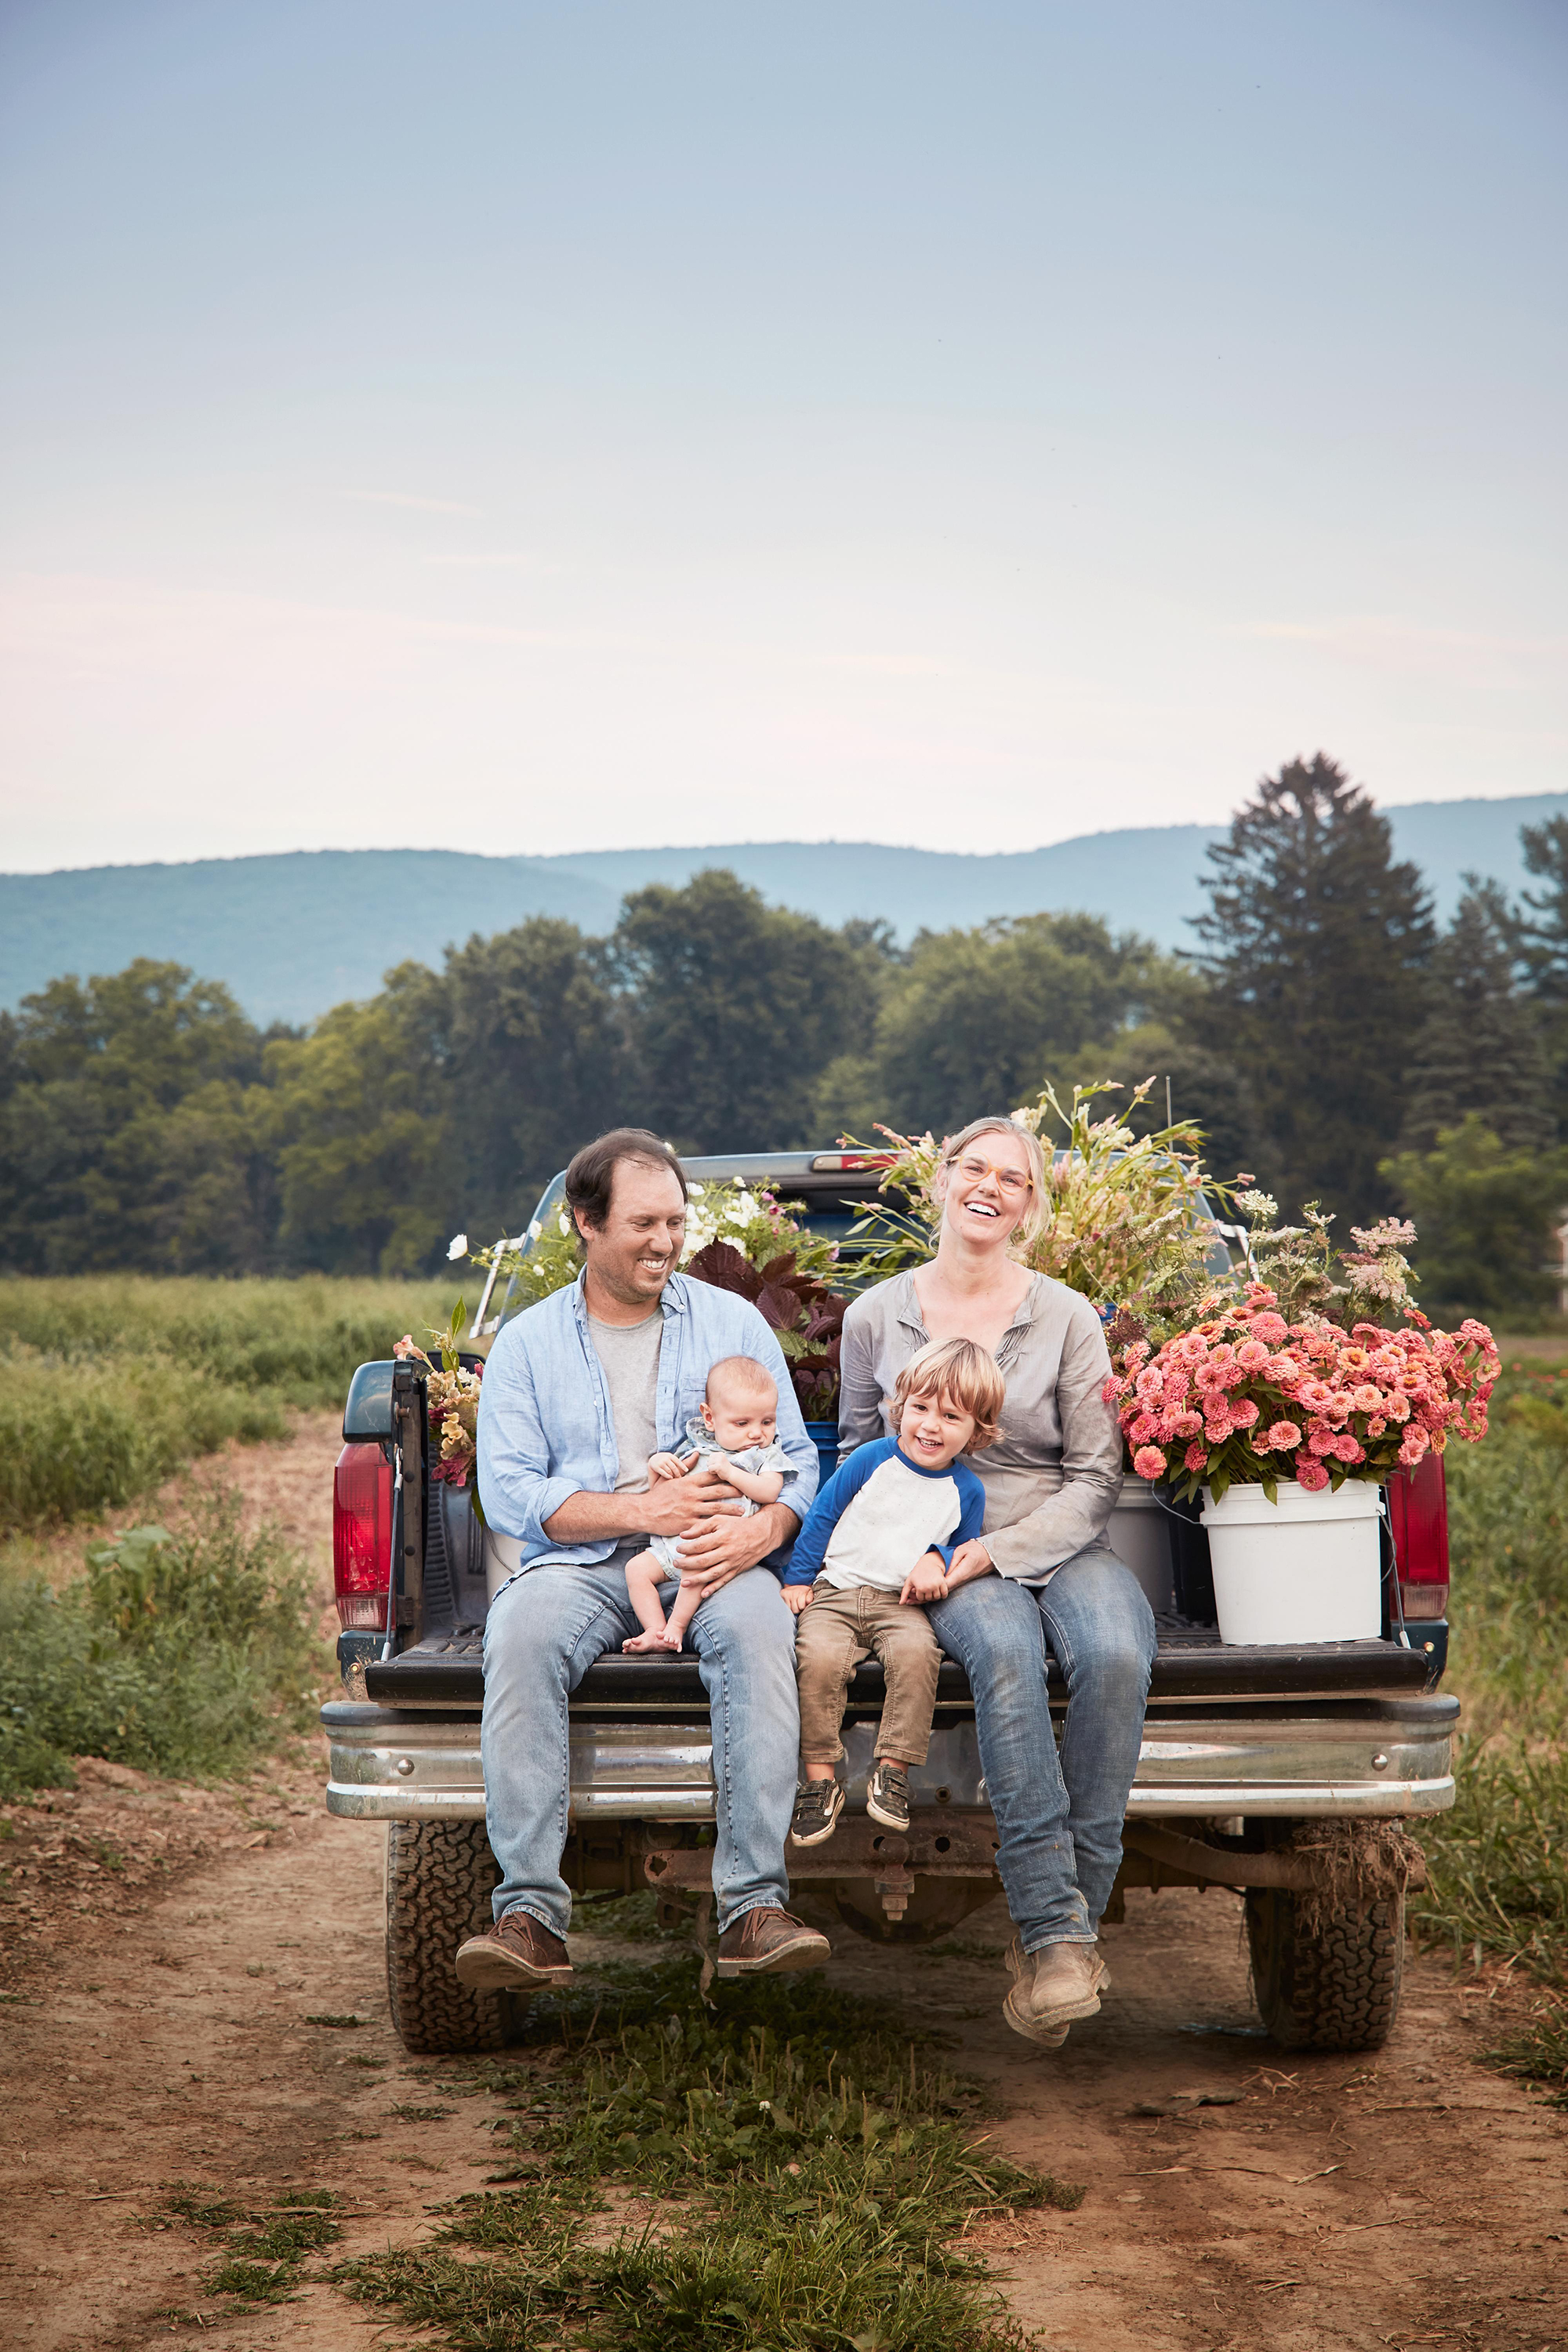 The Tiny Hearts' family in a truck on their farm.